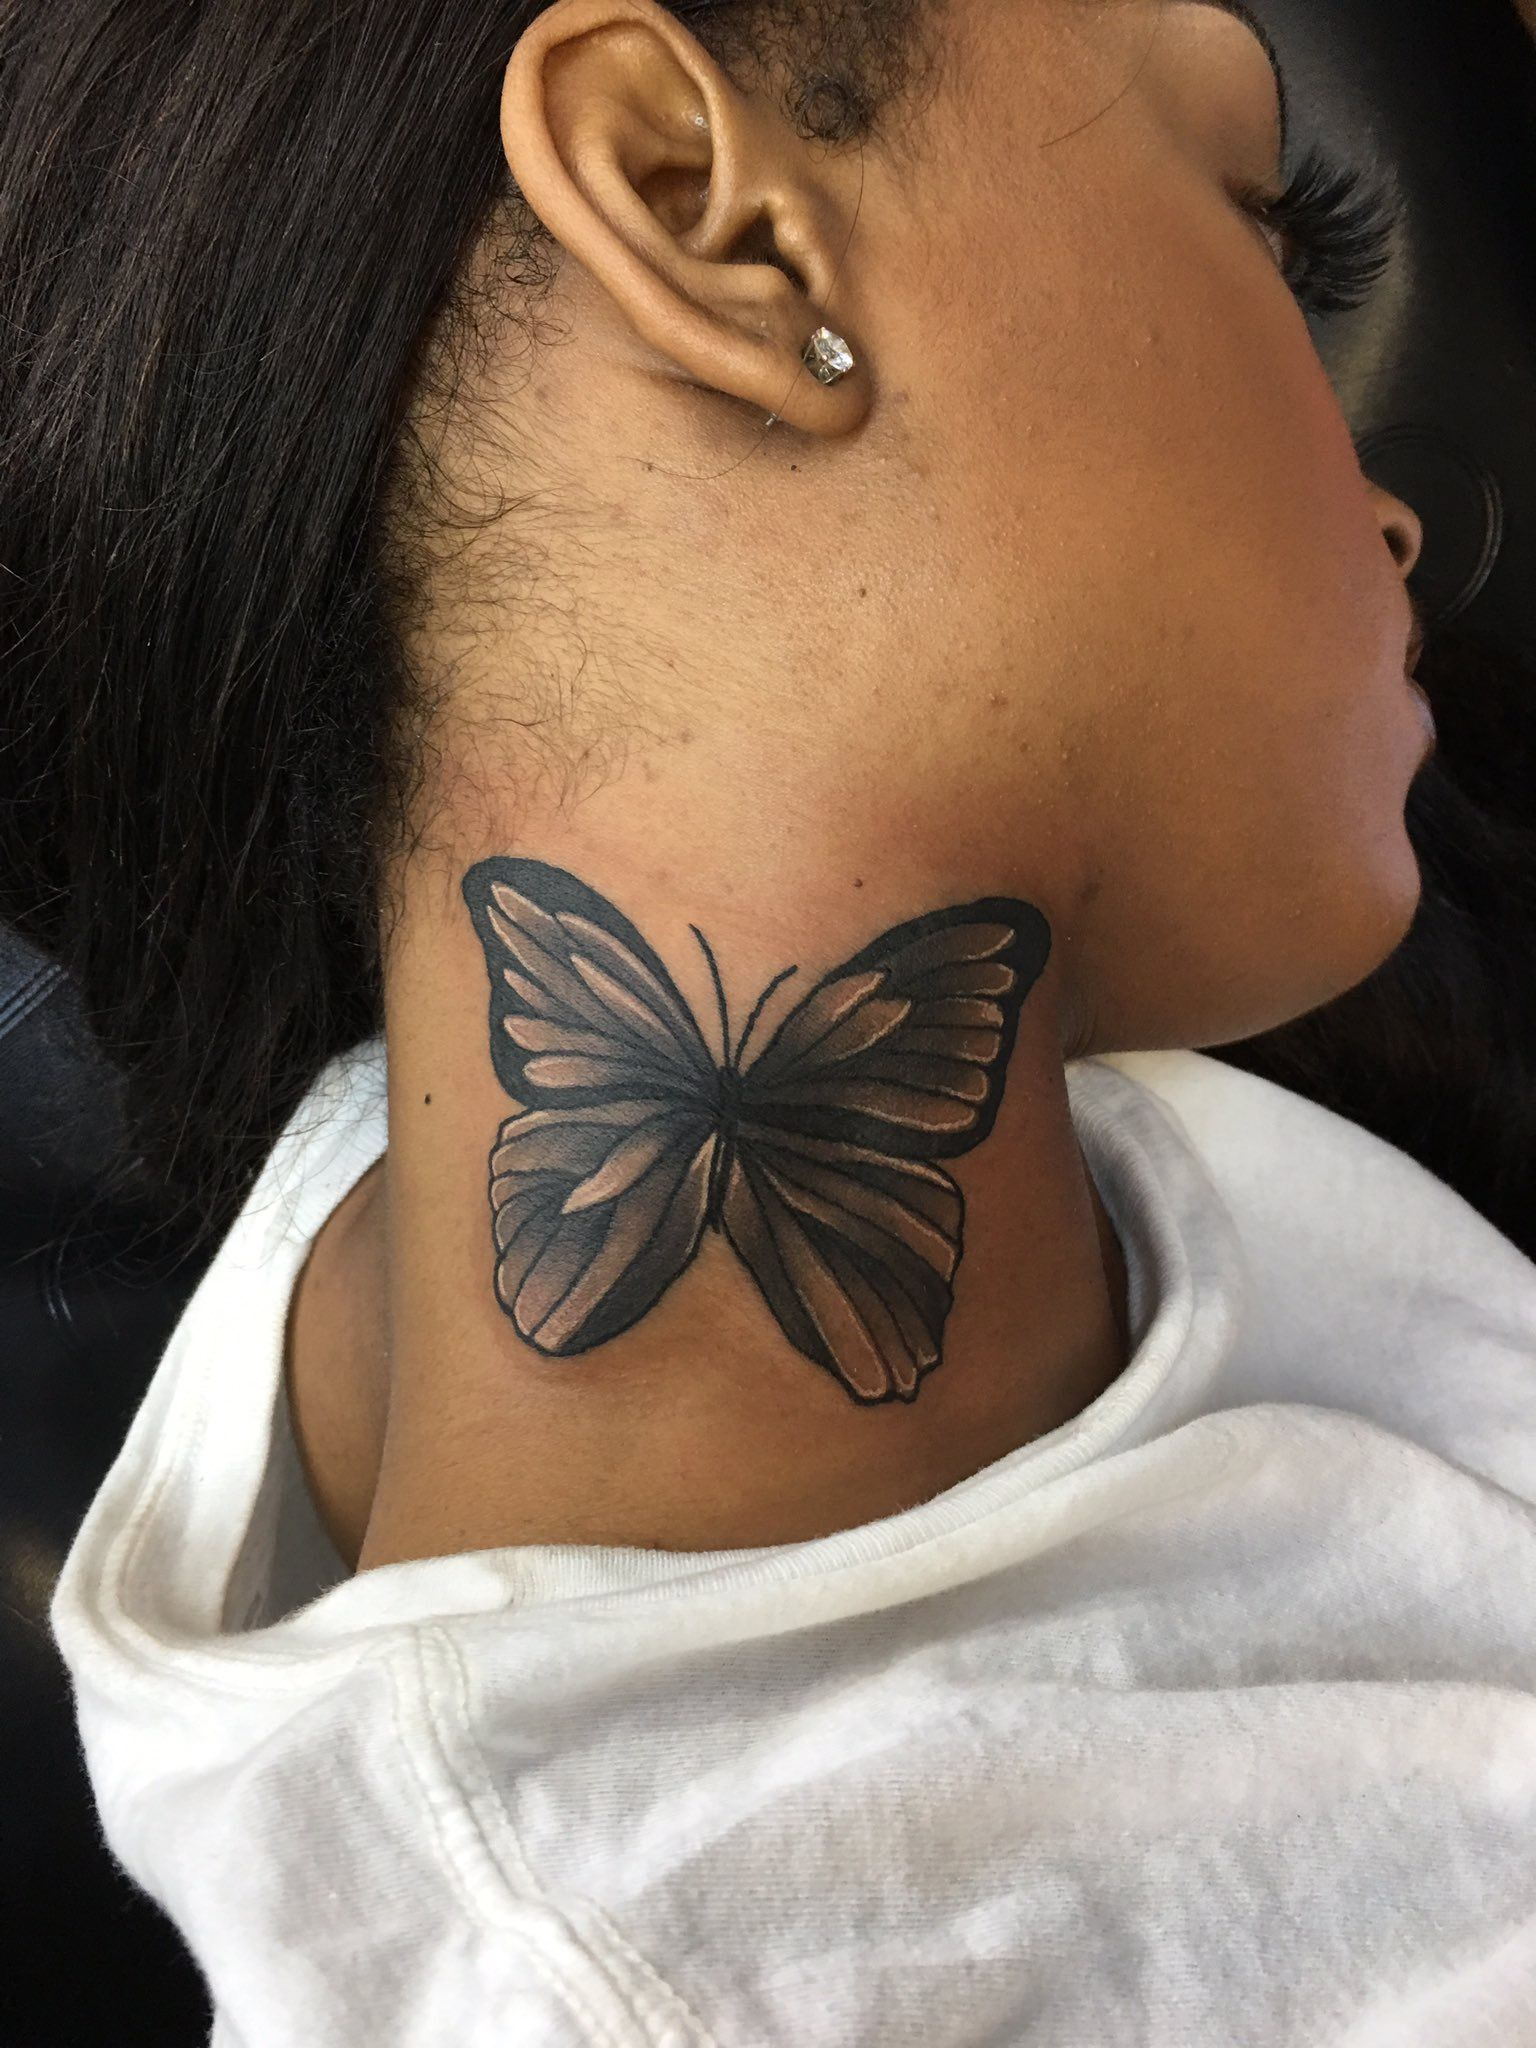 Girl Neck Tattoos By J Bbae On Tattoos Piercings Neck